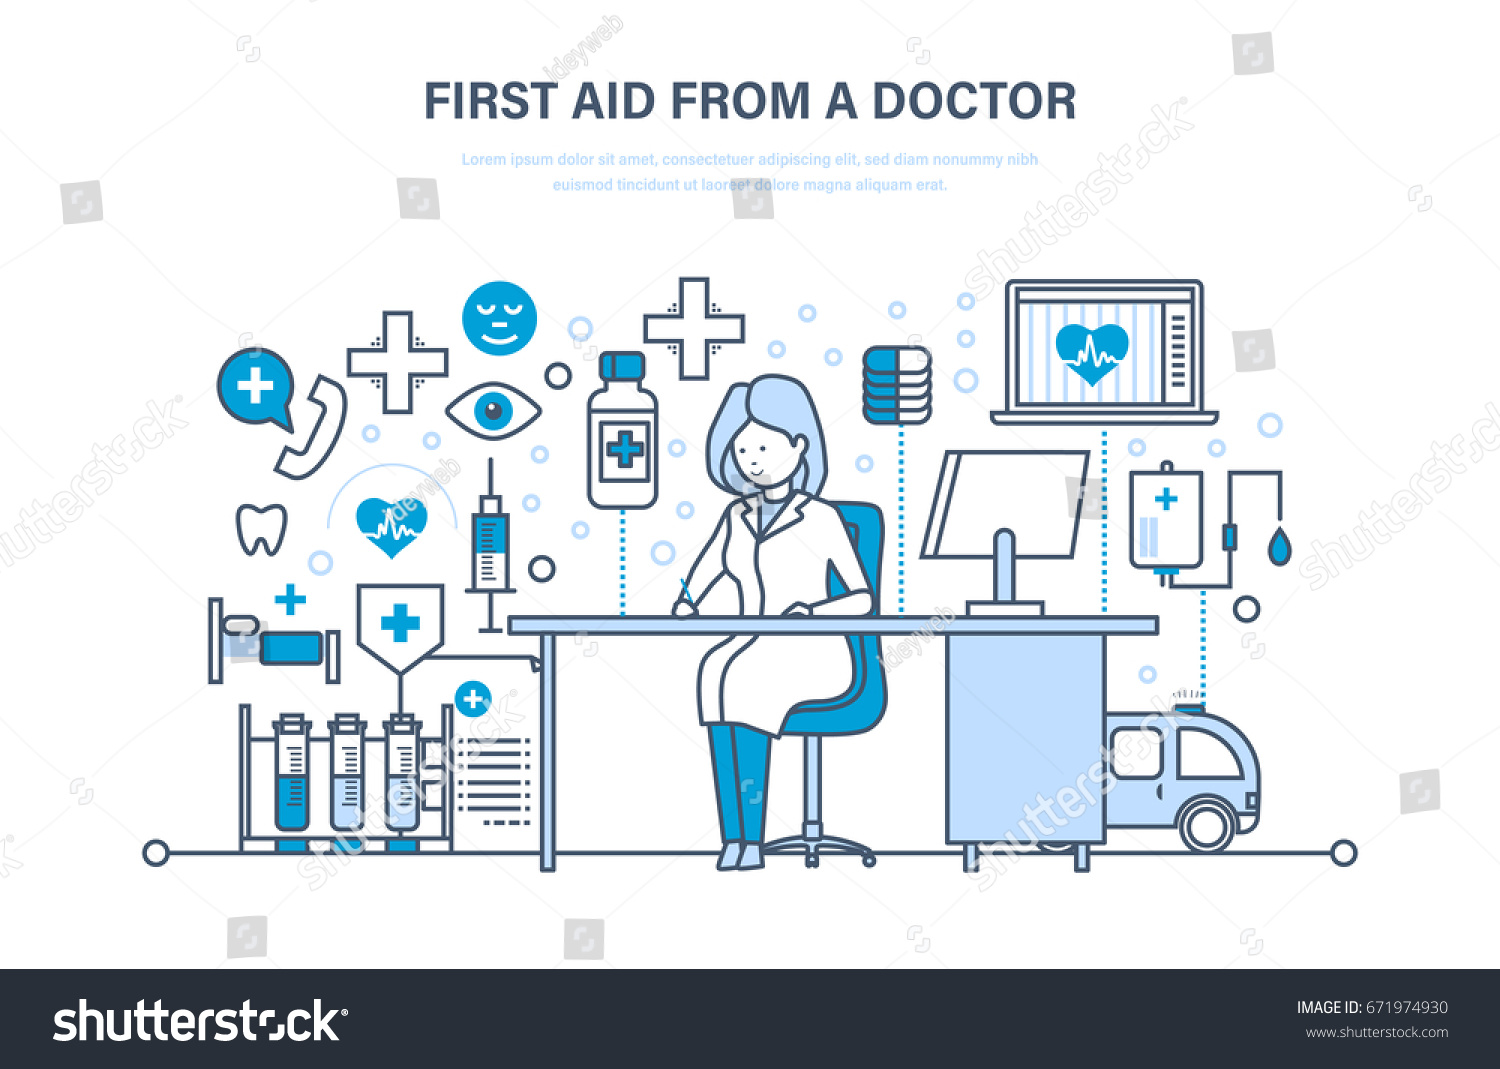 First Aid Doctor Modern Medicine Medical Stock Vector (Royalty Free ...